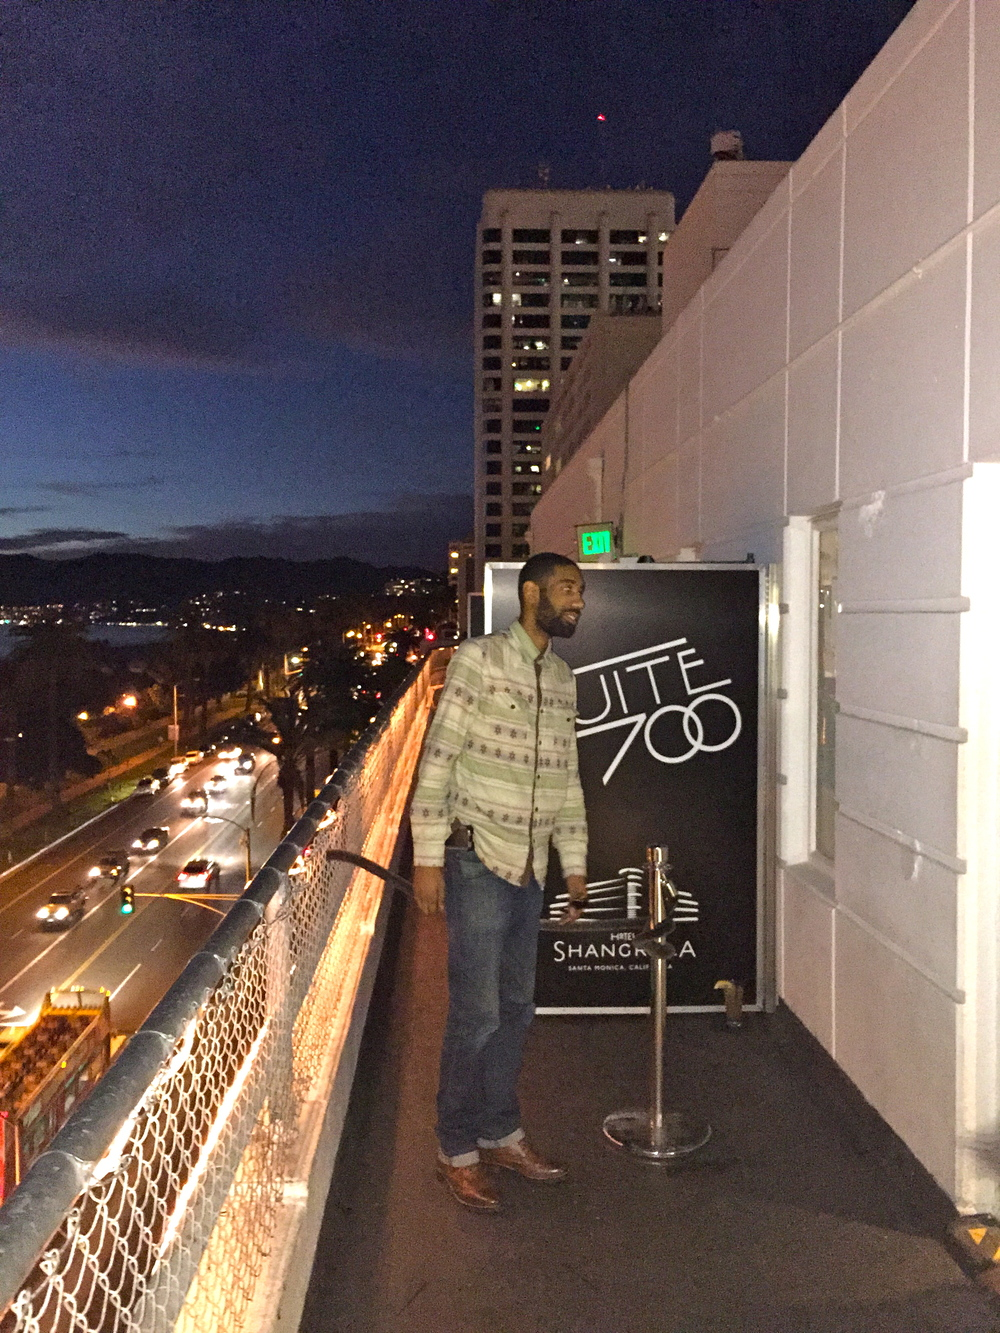 suite 700 rooftop restaurant